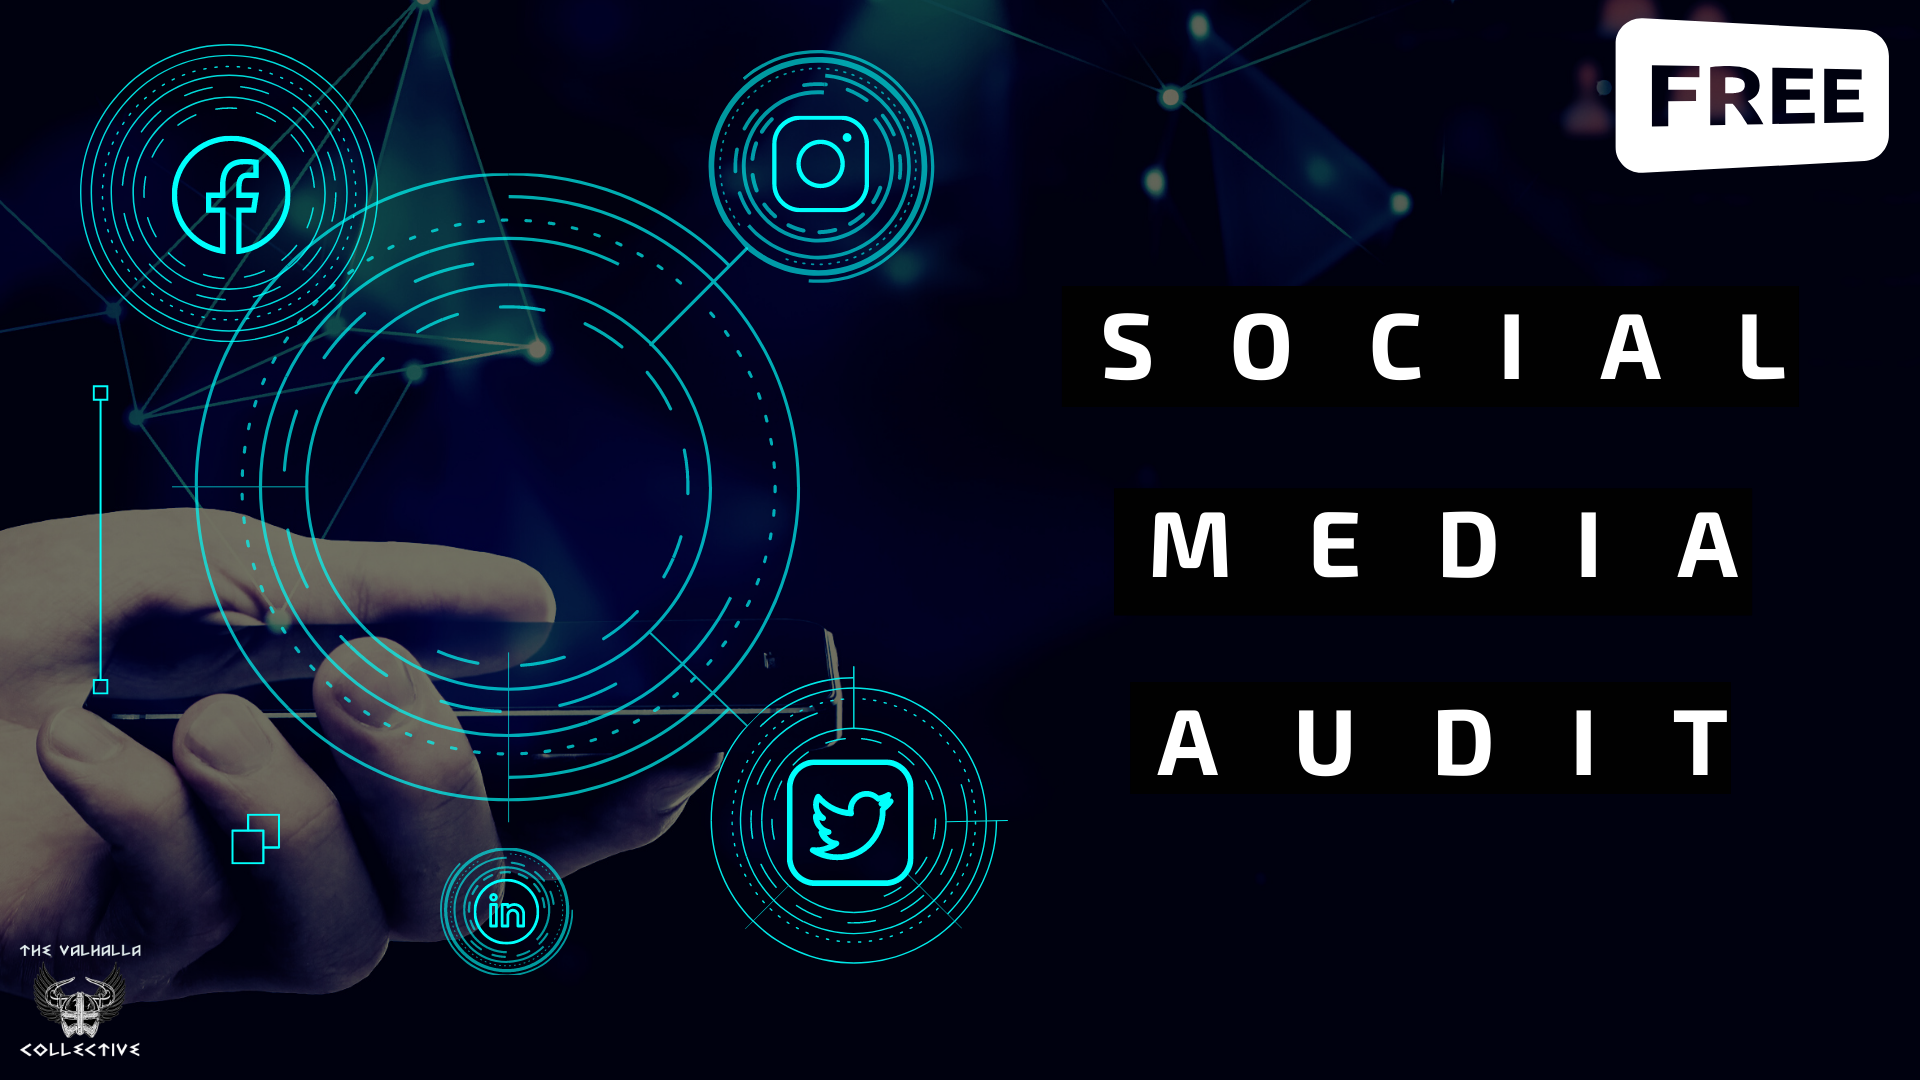 The Valhalla Collective FREE Social Media Audit